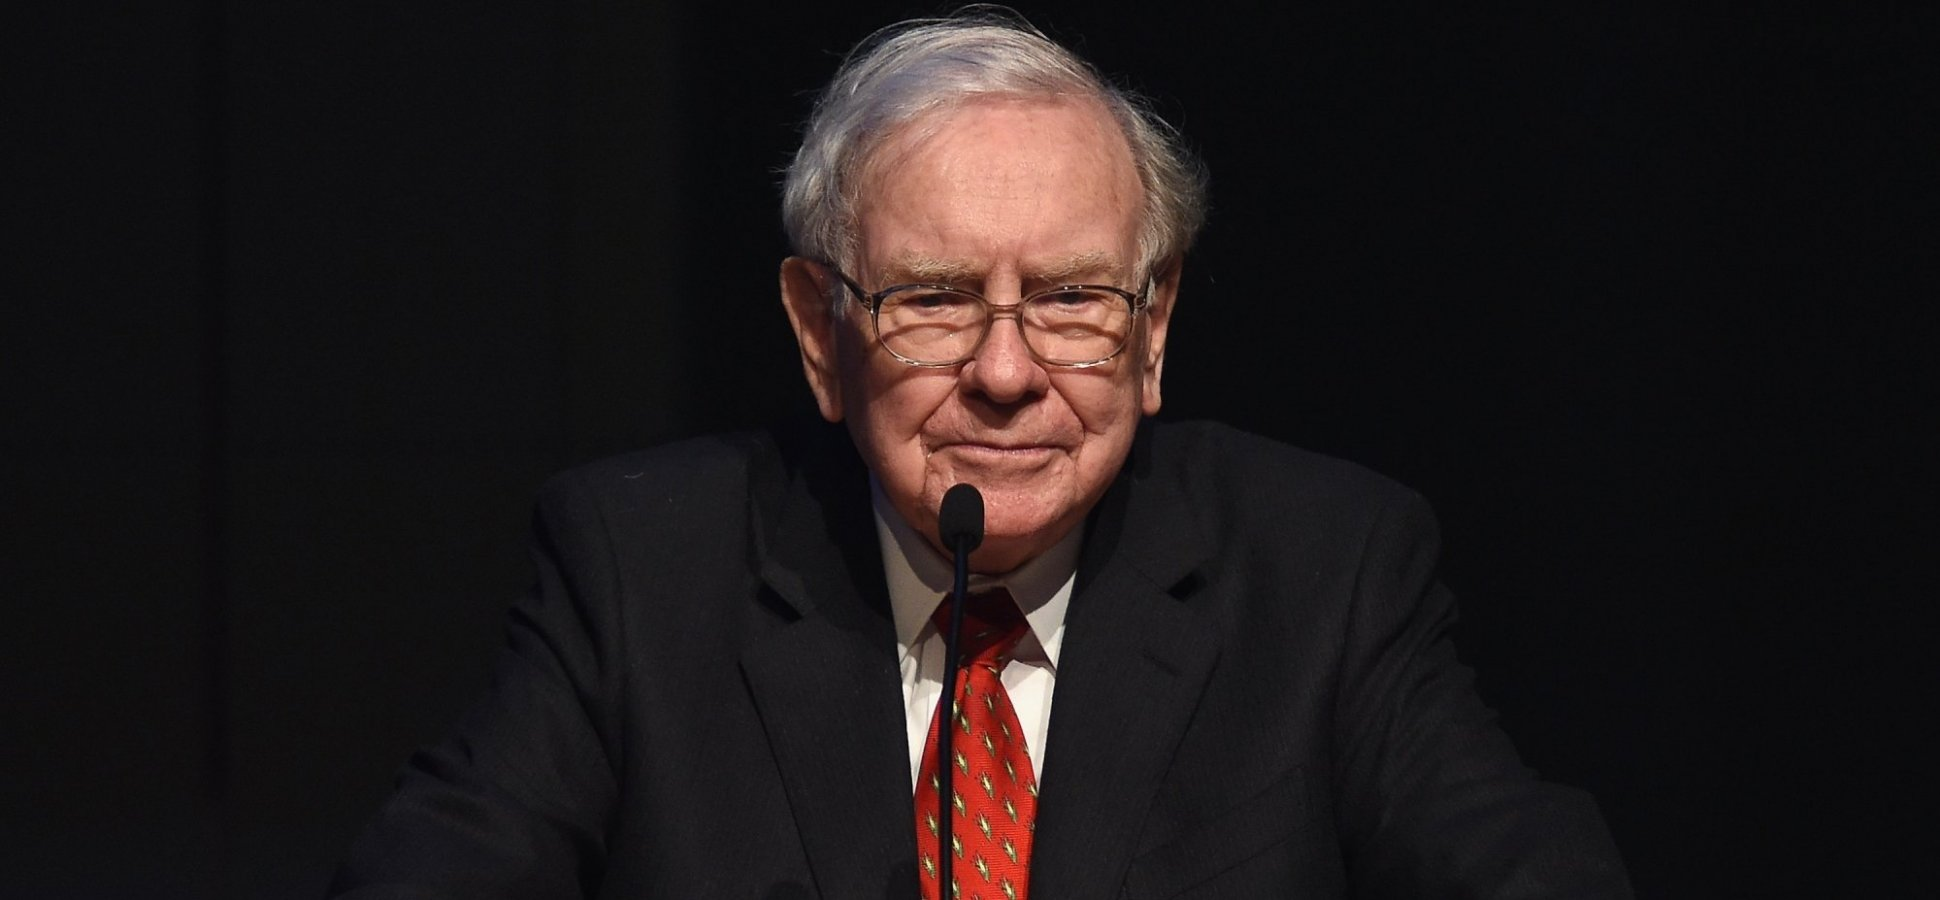 Warren Buffett Offers Up 6 Timeless Tips to Kick-Start Your Way to Success